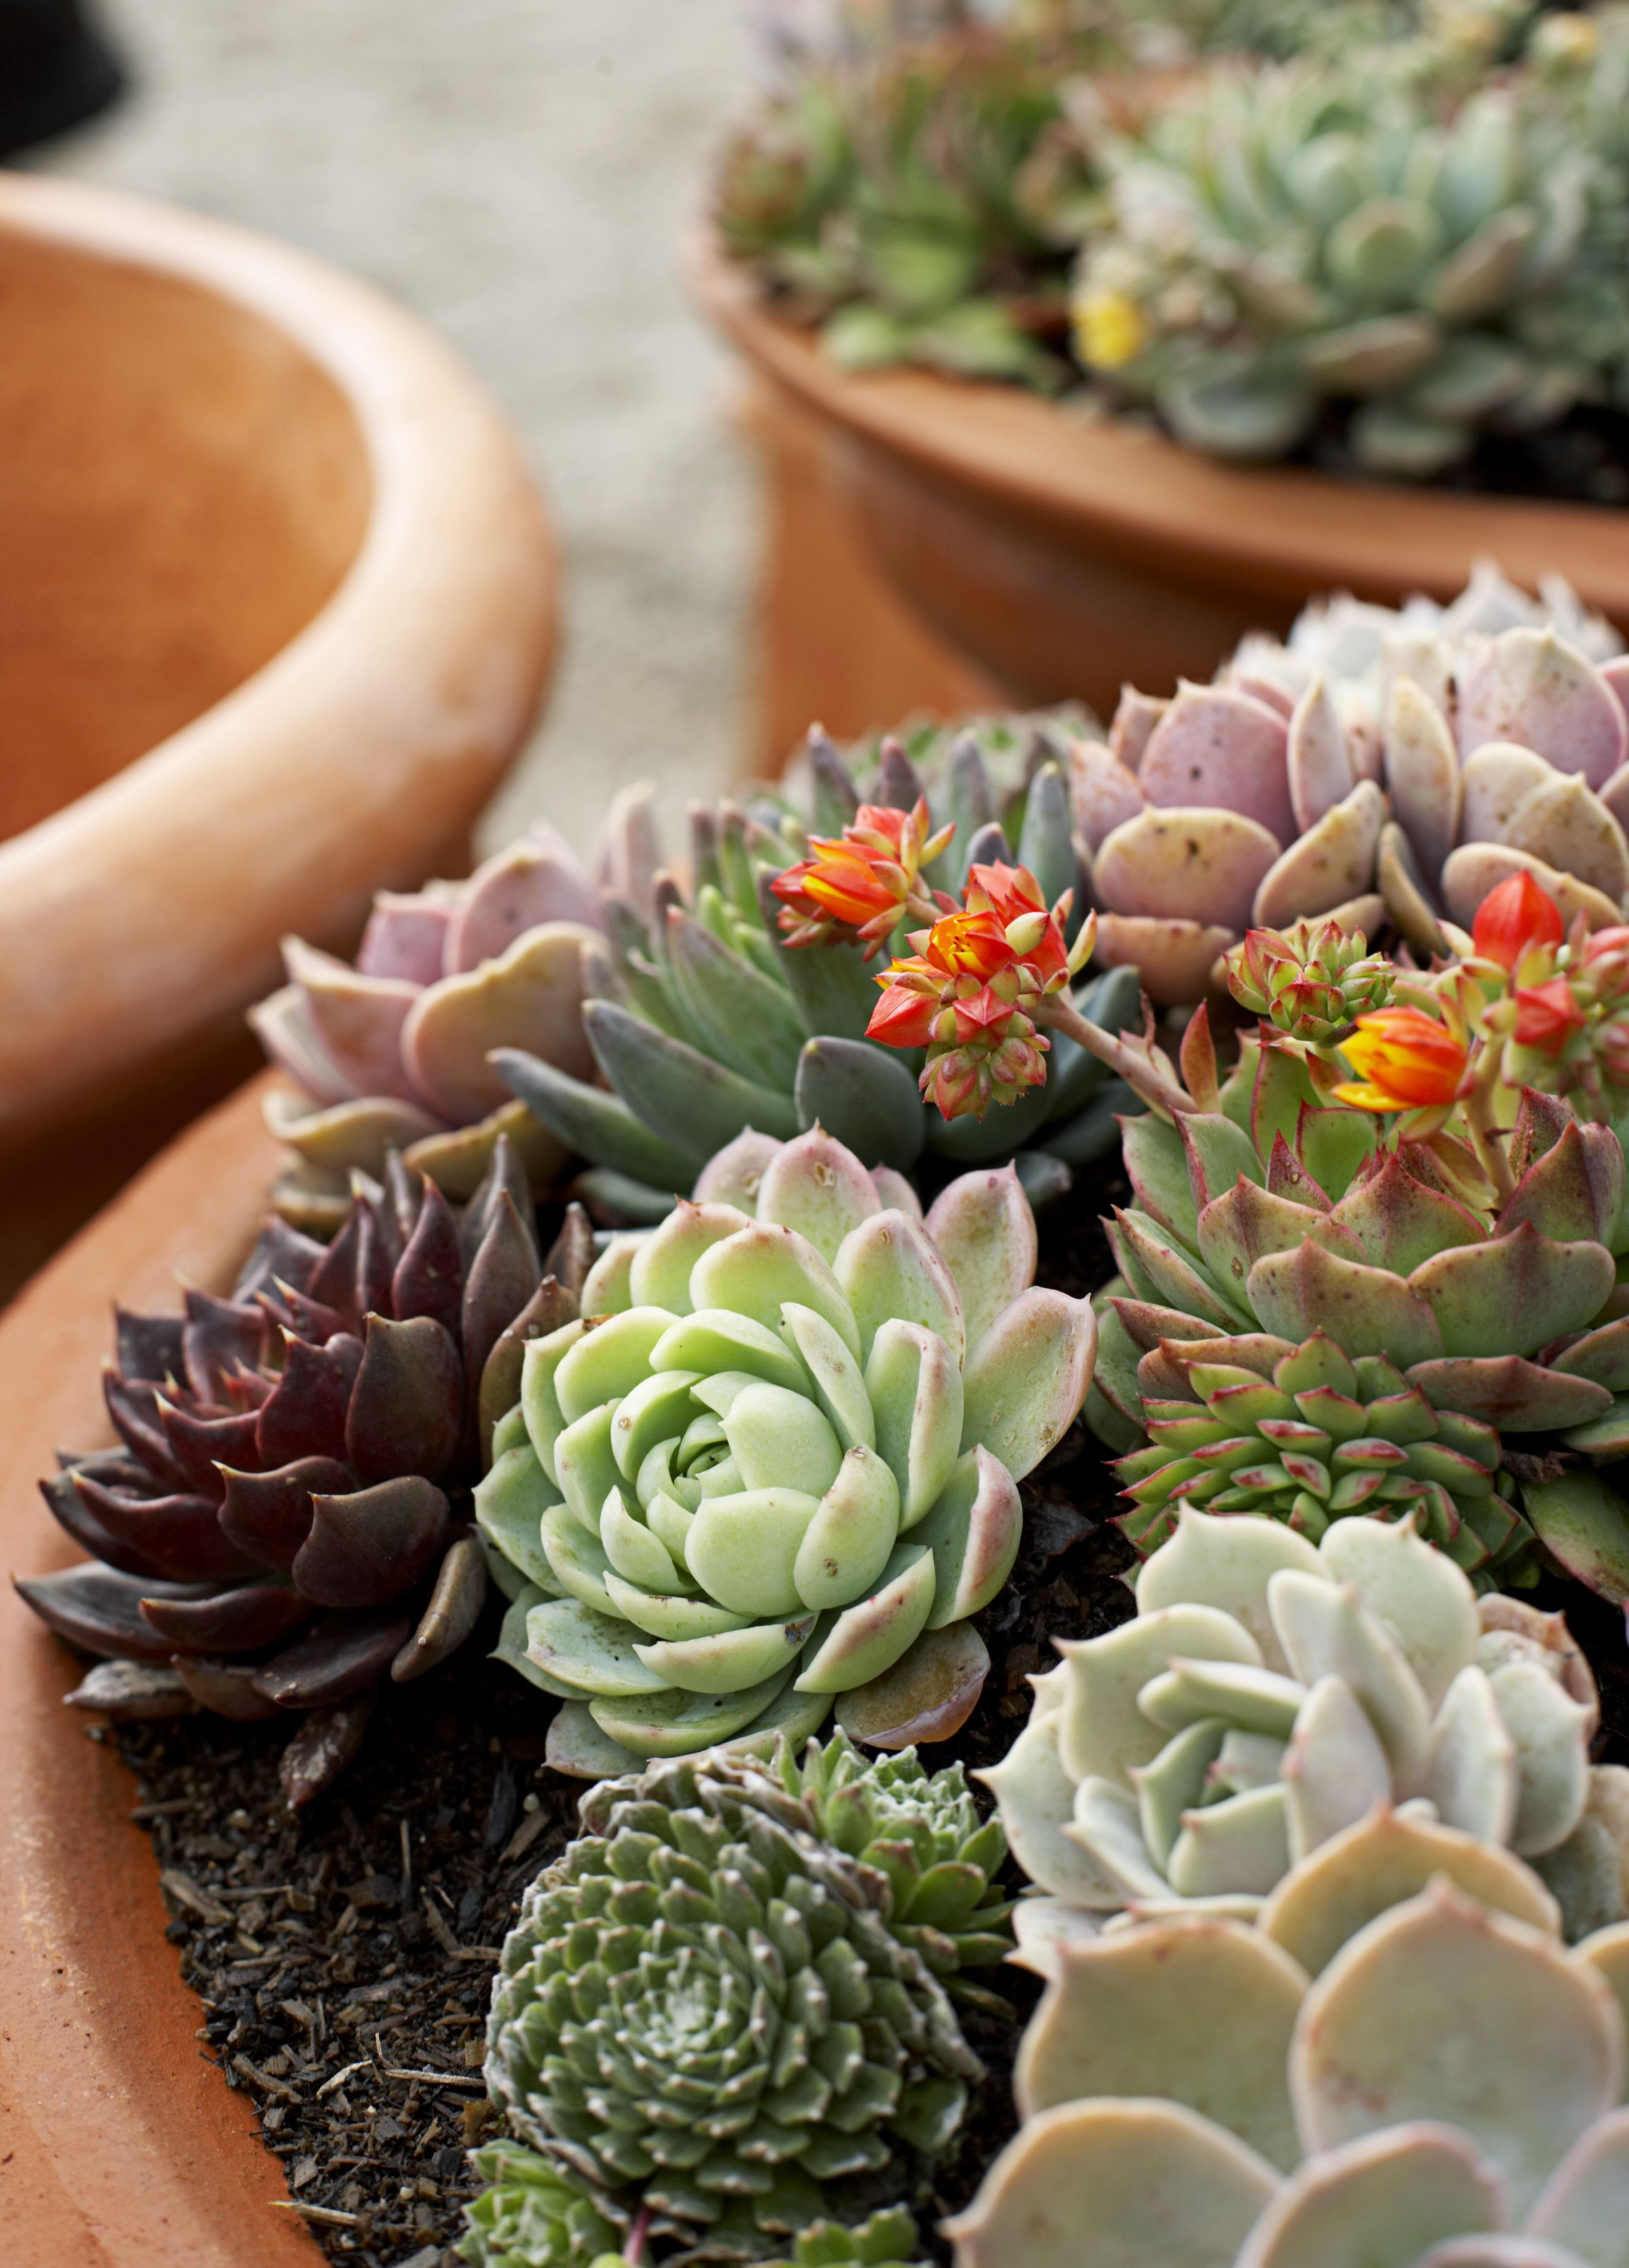 Houseplants That Don't Need Much Water - Hard to Kill Houseplants on